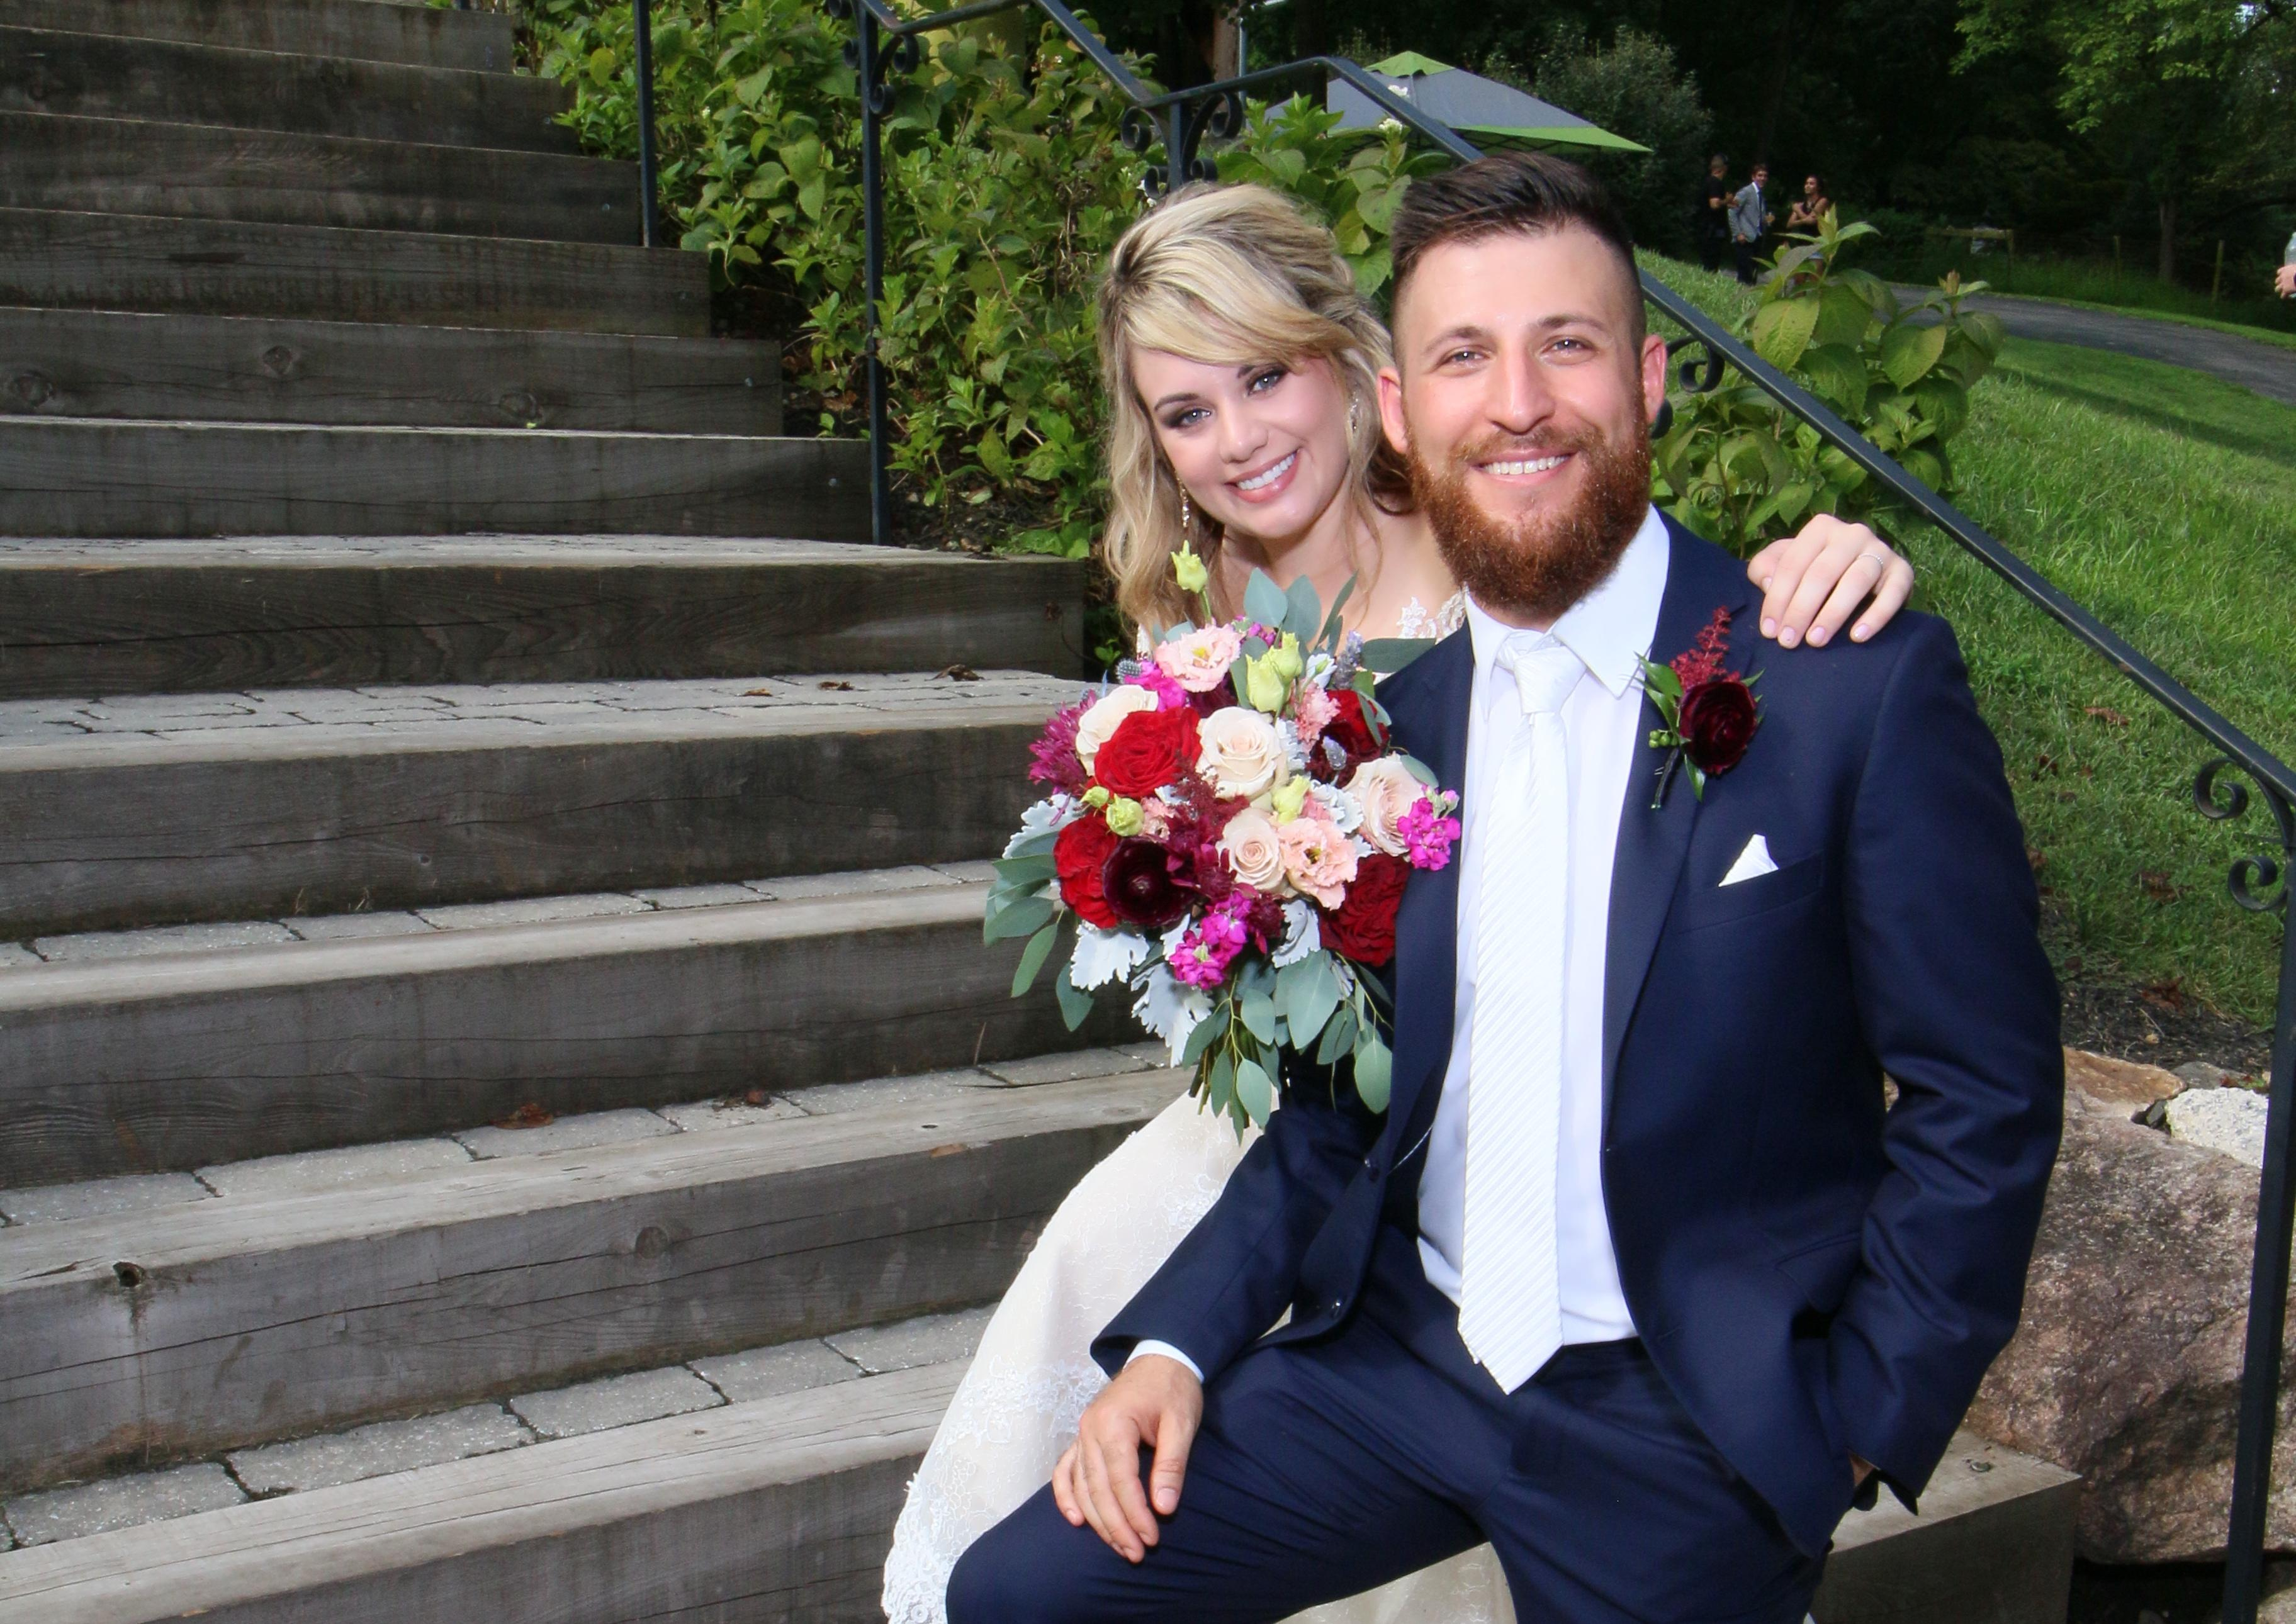 Married at First Sight Kate and Luke spoilers